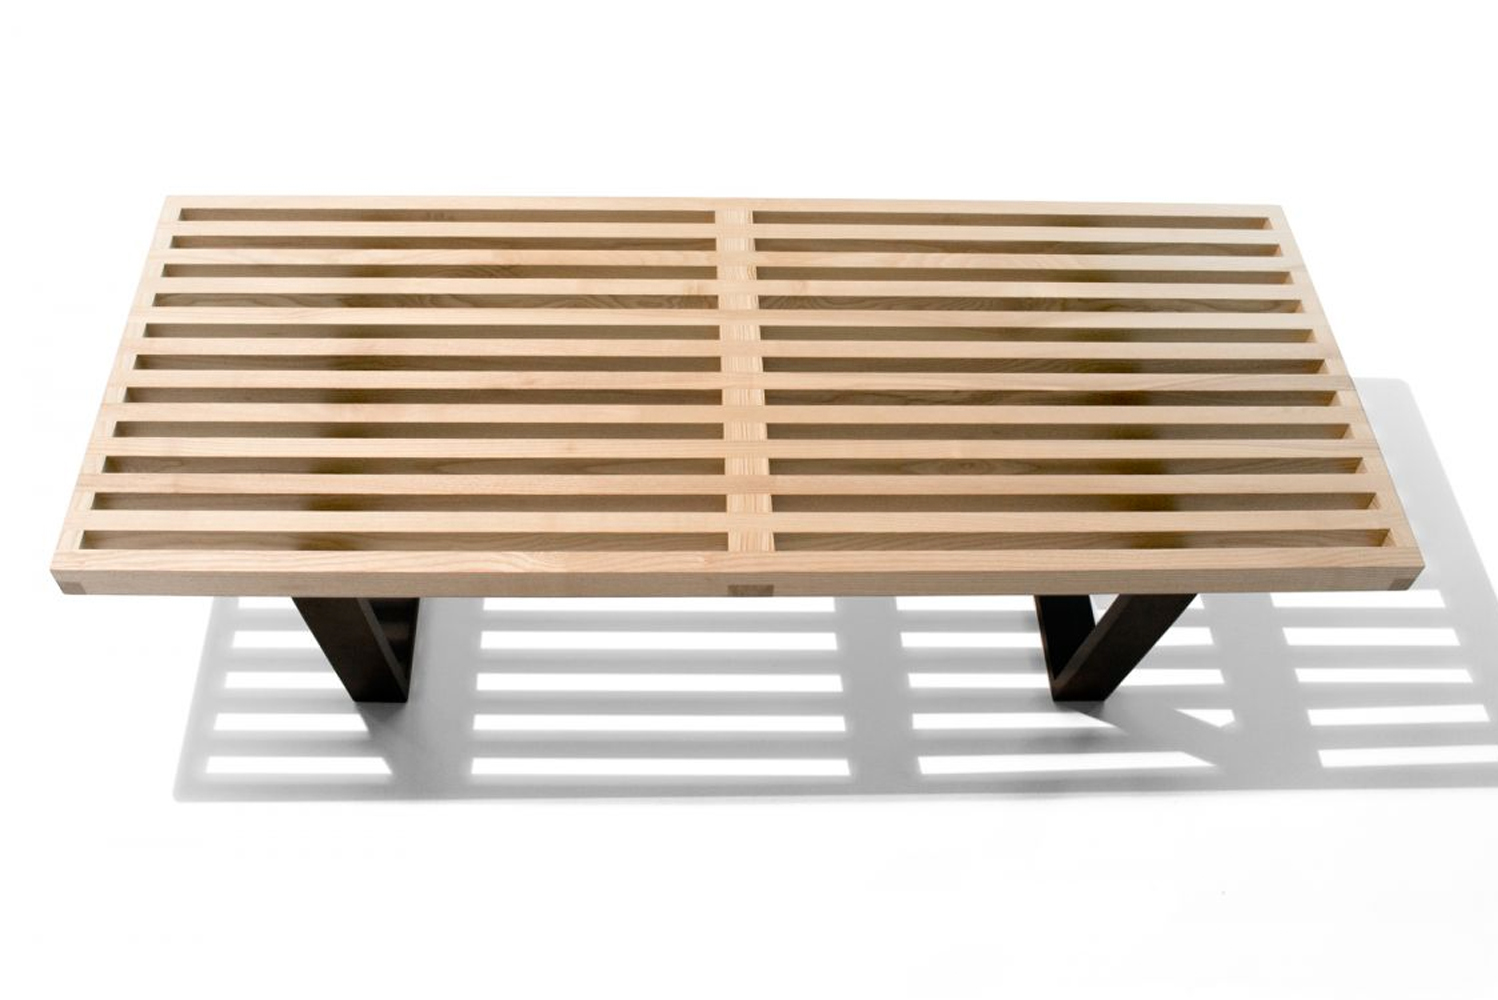 Equally functional as a bench or low table, this piece from Rove Concepts can be used in numerous ways.